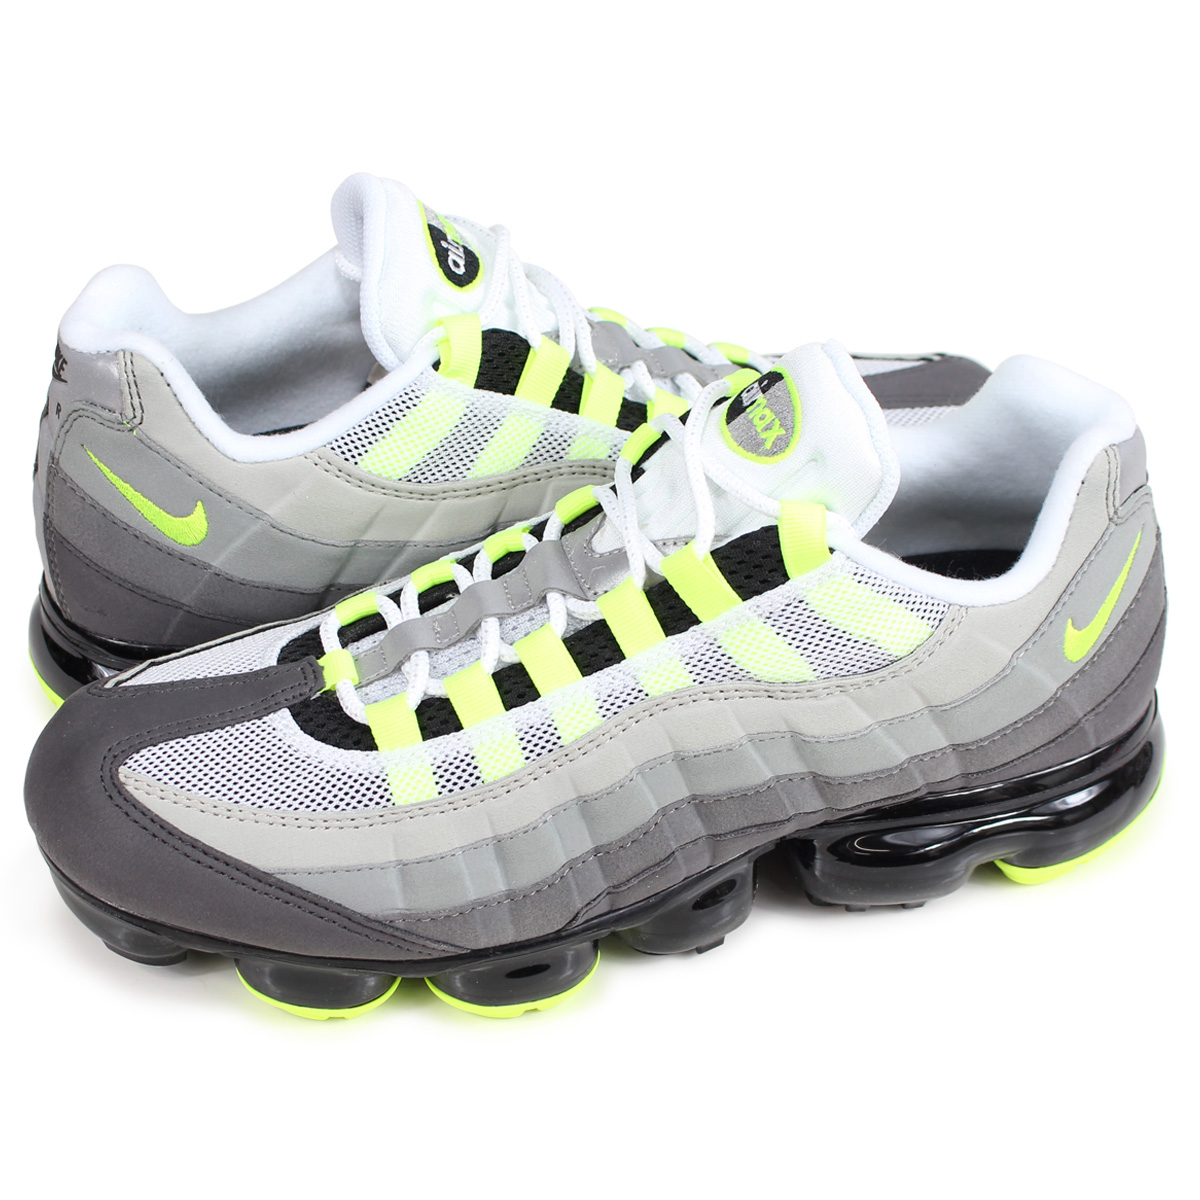 59630b49c78 NIKE AIR VAPORMAX 95 NEON Nike air vapor max 95 sneakers men AJ7292-001 neon  yellow  load planned Shinnyu load in reservation product 8 20 containing